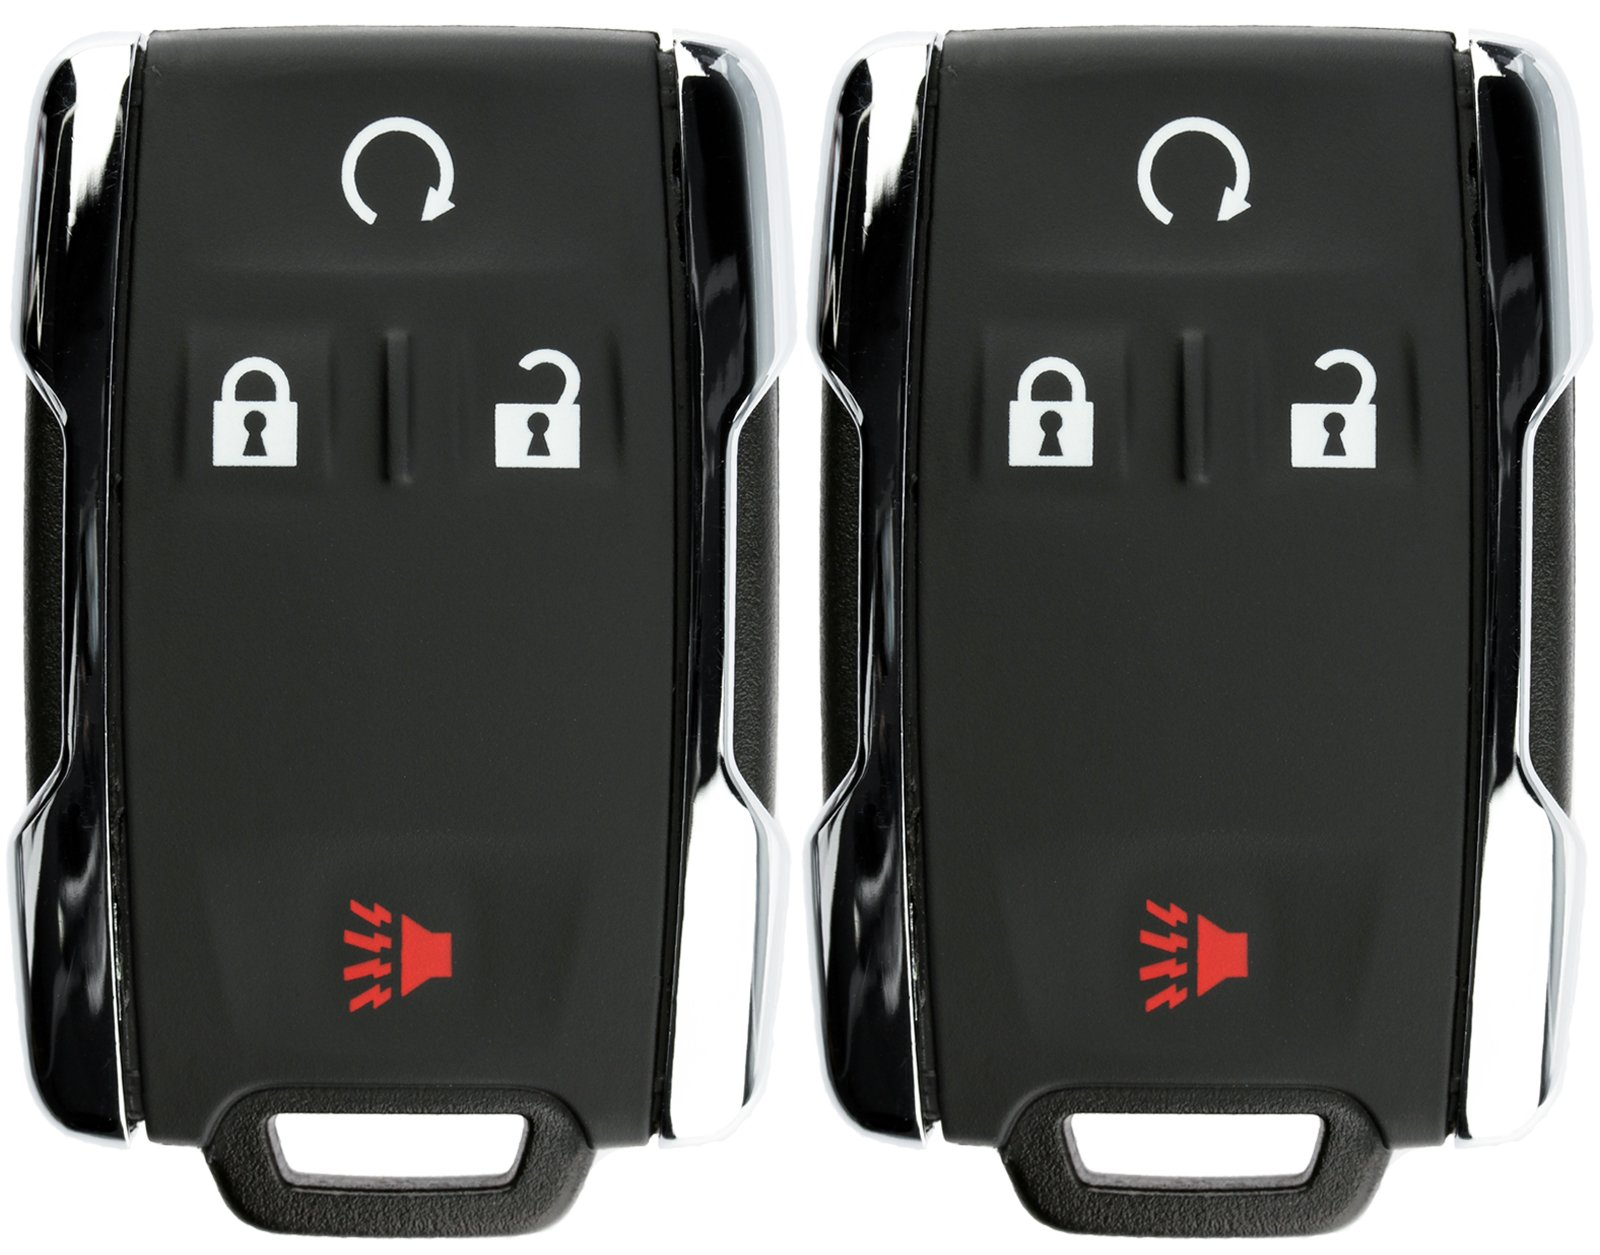 KeylessOption Keyless Entry Remote Control Car Key Fob Replacement for Chevy GMC M3N-32337100 (Pack of 2) by KeylessOption